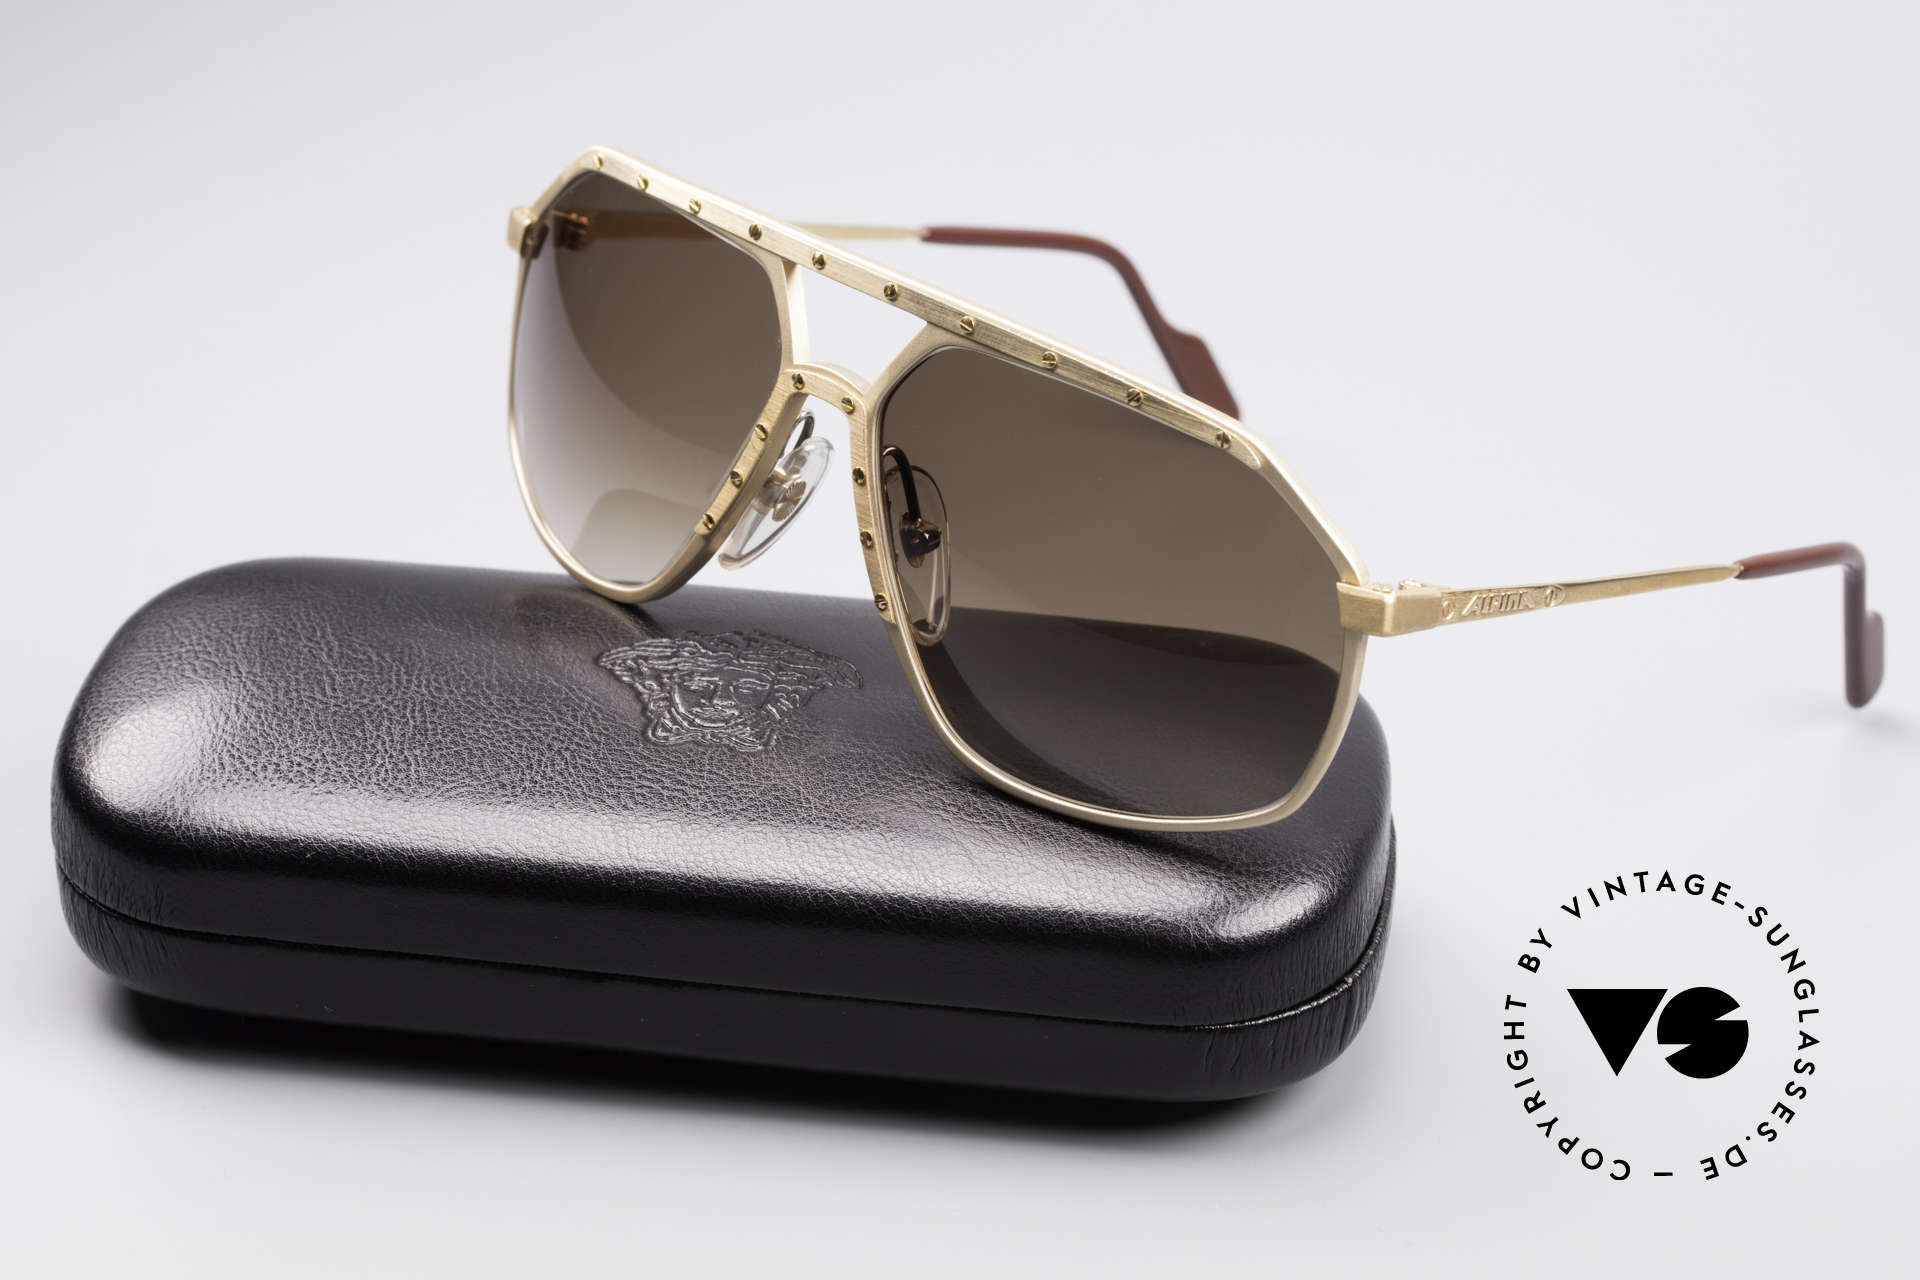 Alpina M6 Old 80's West Germany Shades, NO RETRO shades; handmade rarity + Versace case, Made for Men